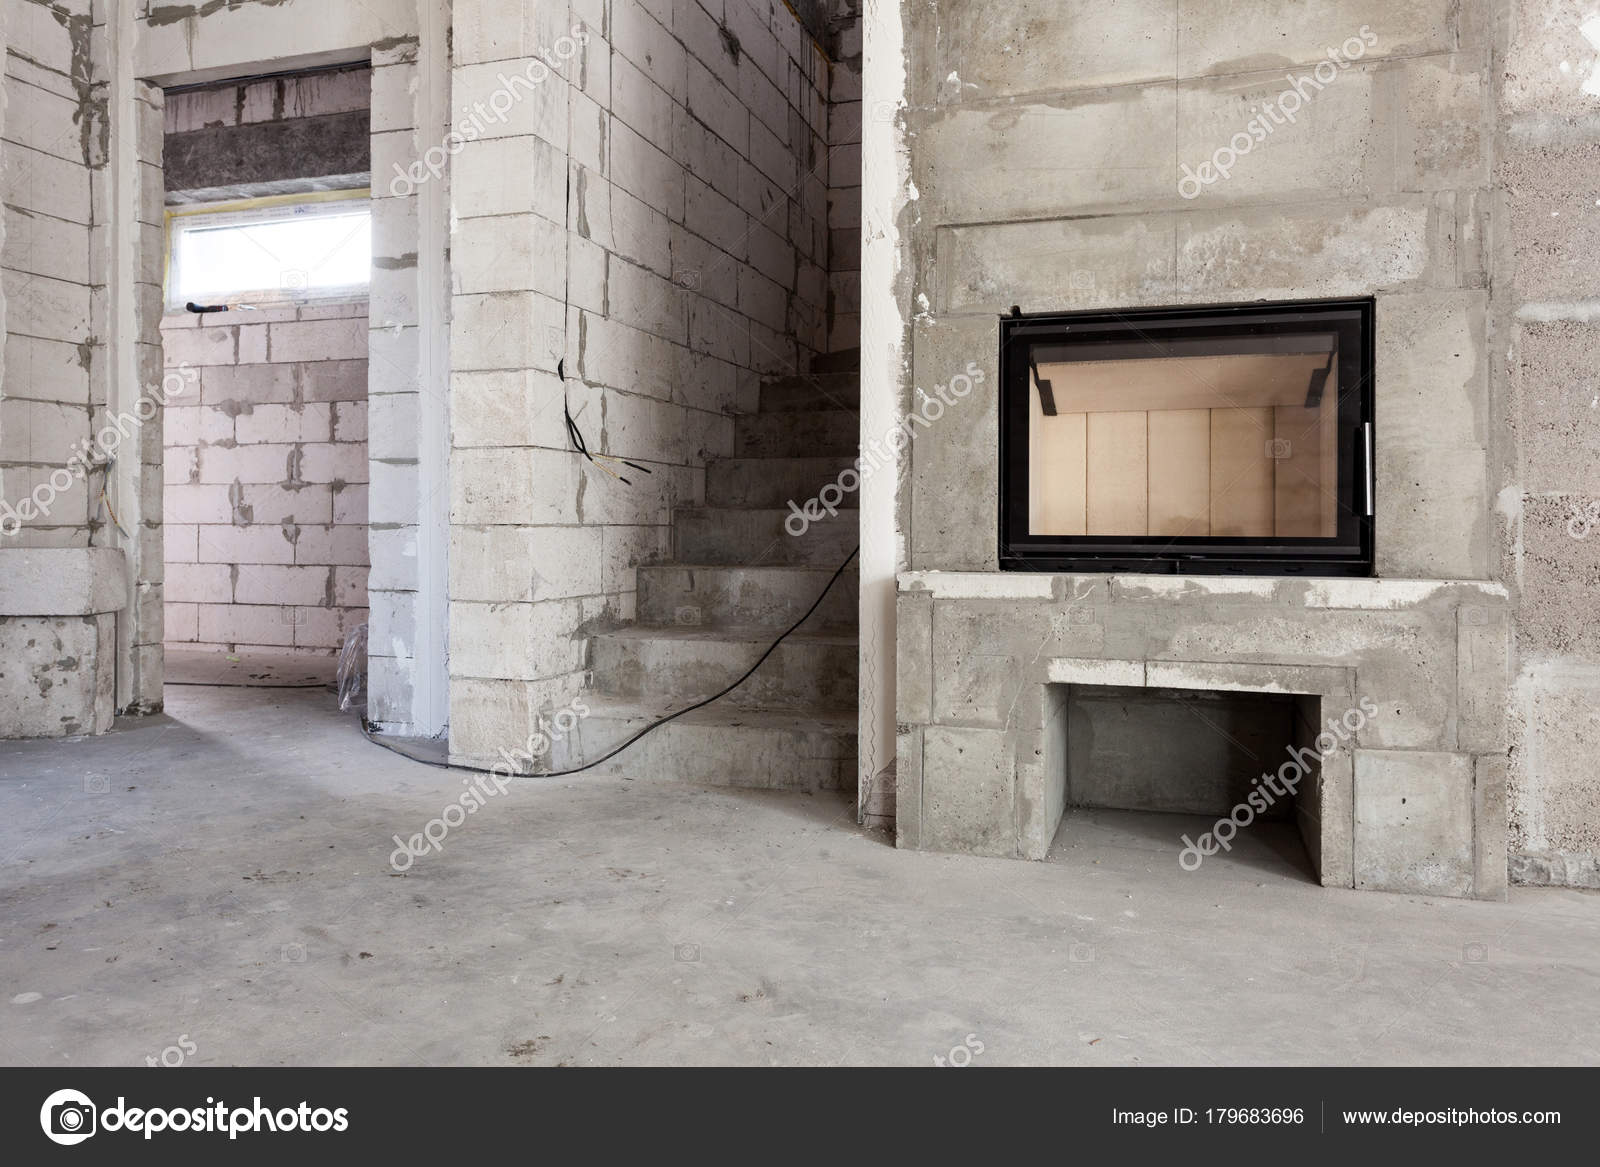 new house construction modern wood fired fireplace construction rh depositphotos com Typical House Wiring Circuits Typical House Wiring Circuits